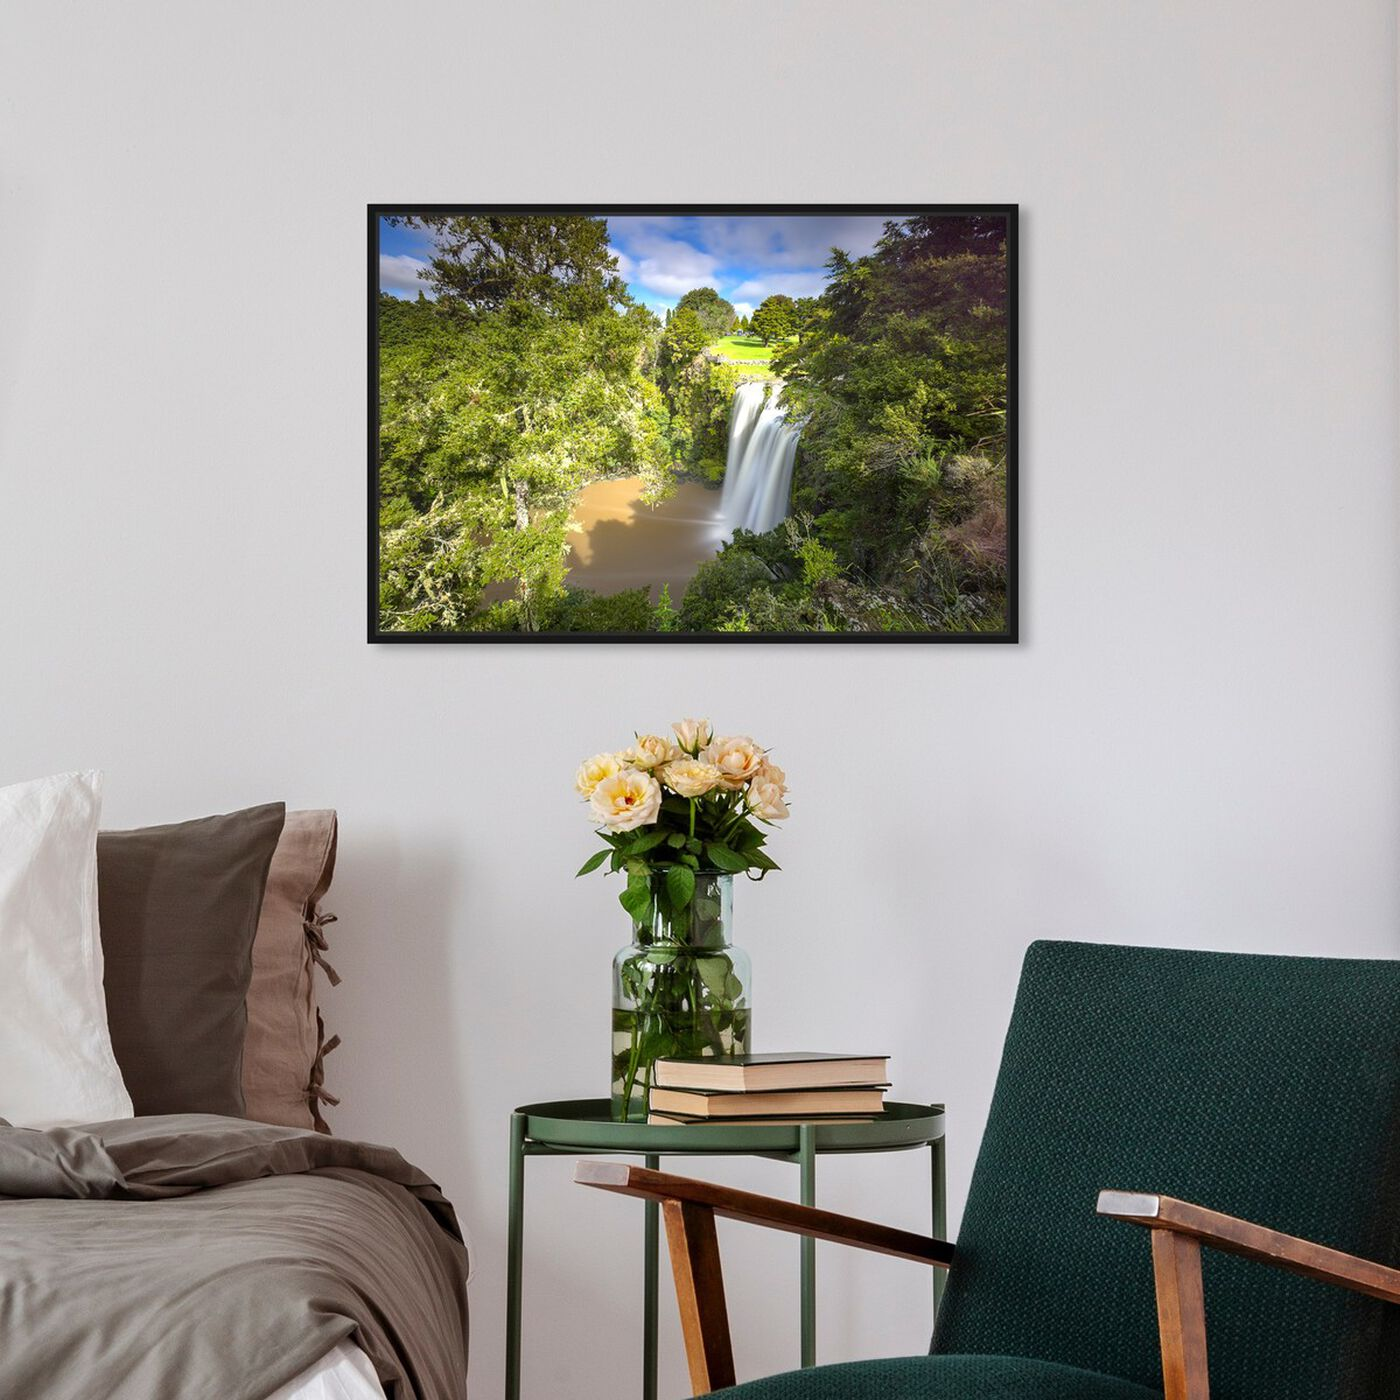 Hanging view of Curro Cardenal - Rainforest II featuring nature and landscape and nature art.